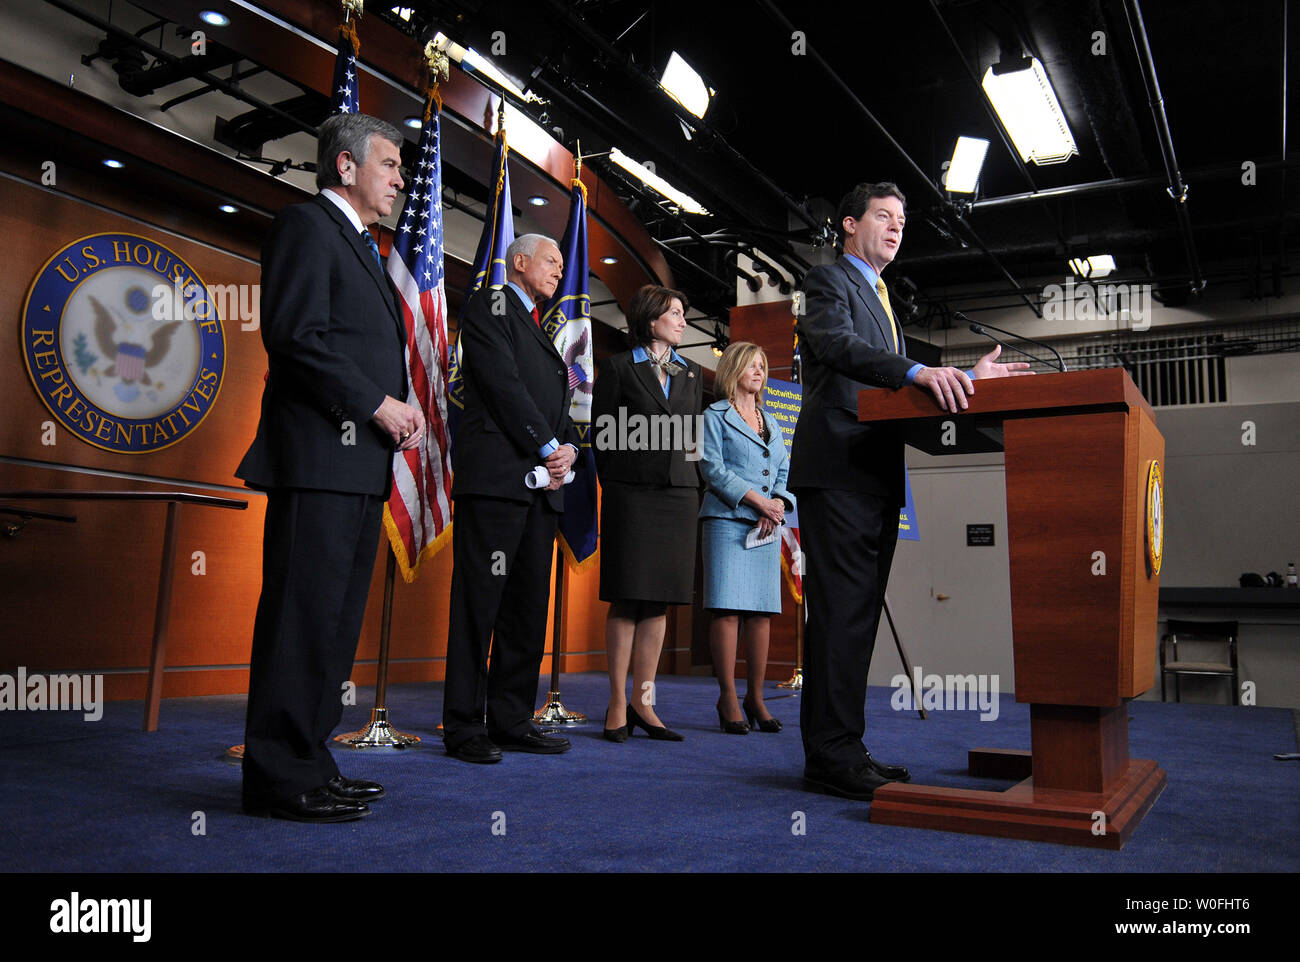 Sen. Sam Brownback (R-KS) speaks on the health care reform bill and the possibility that the bill could provide public funding for abortions, in Washington on March 18, 2010. Brownback was joined by GOP constituents. UPI/Kevin Dietsch Stock Photo